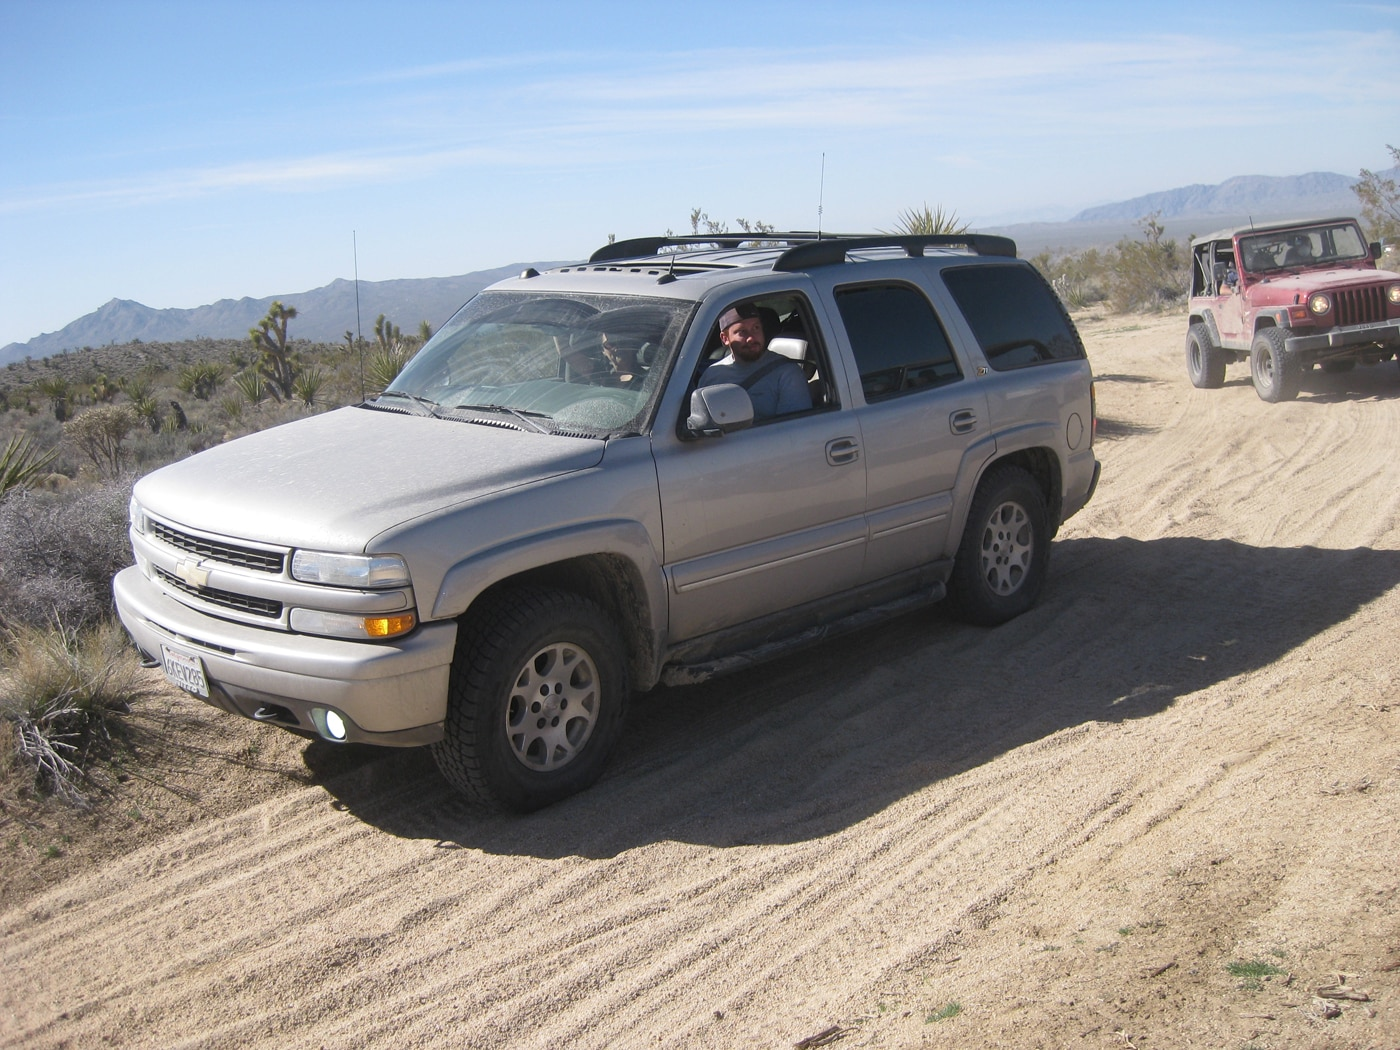 129 1103 8045+mojave road trail 2011+chevy tahoe